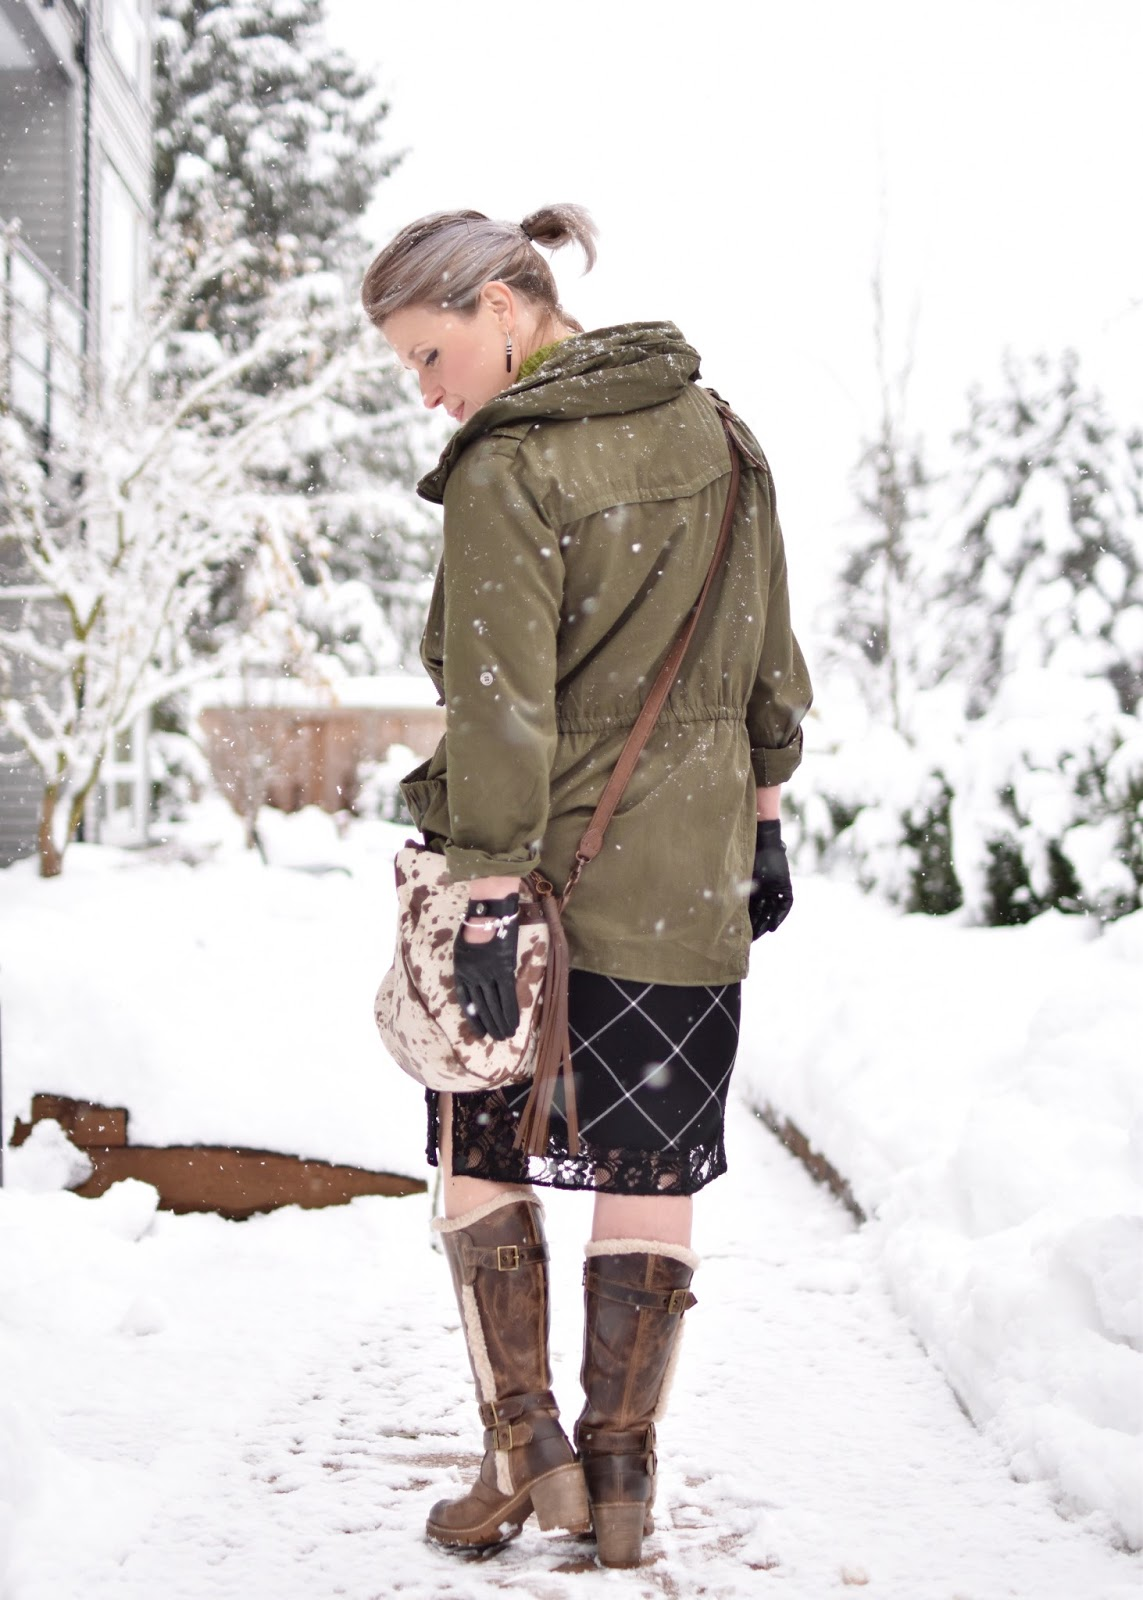 Monika Faulkner outfit inspiration - styling a plaid slipdress with an army-inspired parka, fleece-trimmed block-heeled boots, and pony-hair cross-body bag